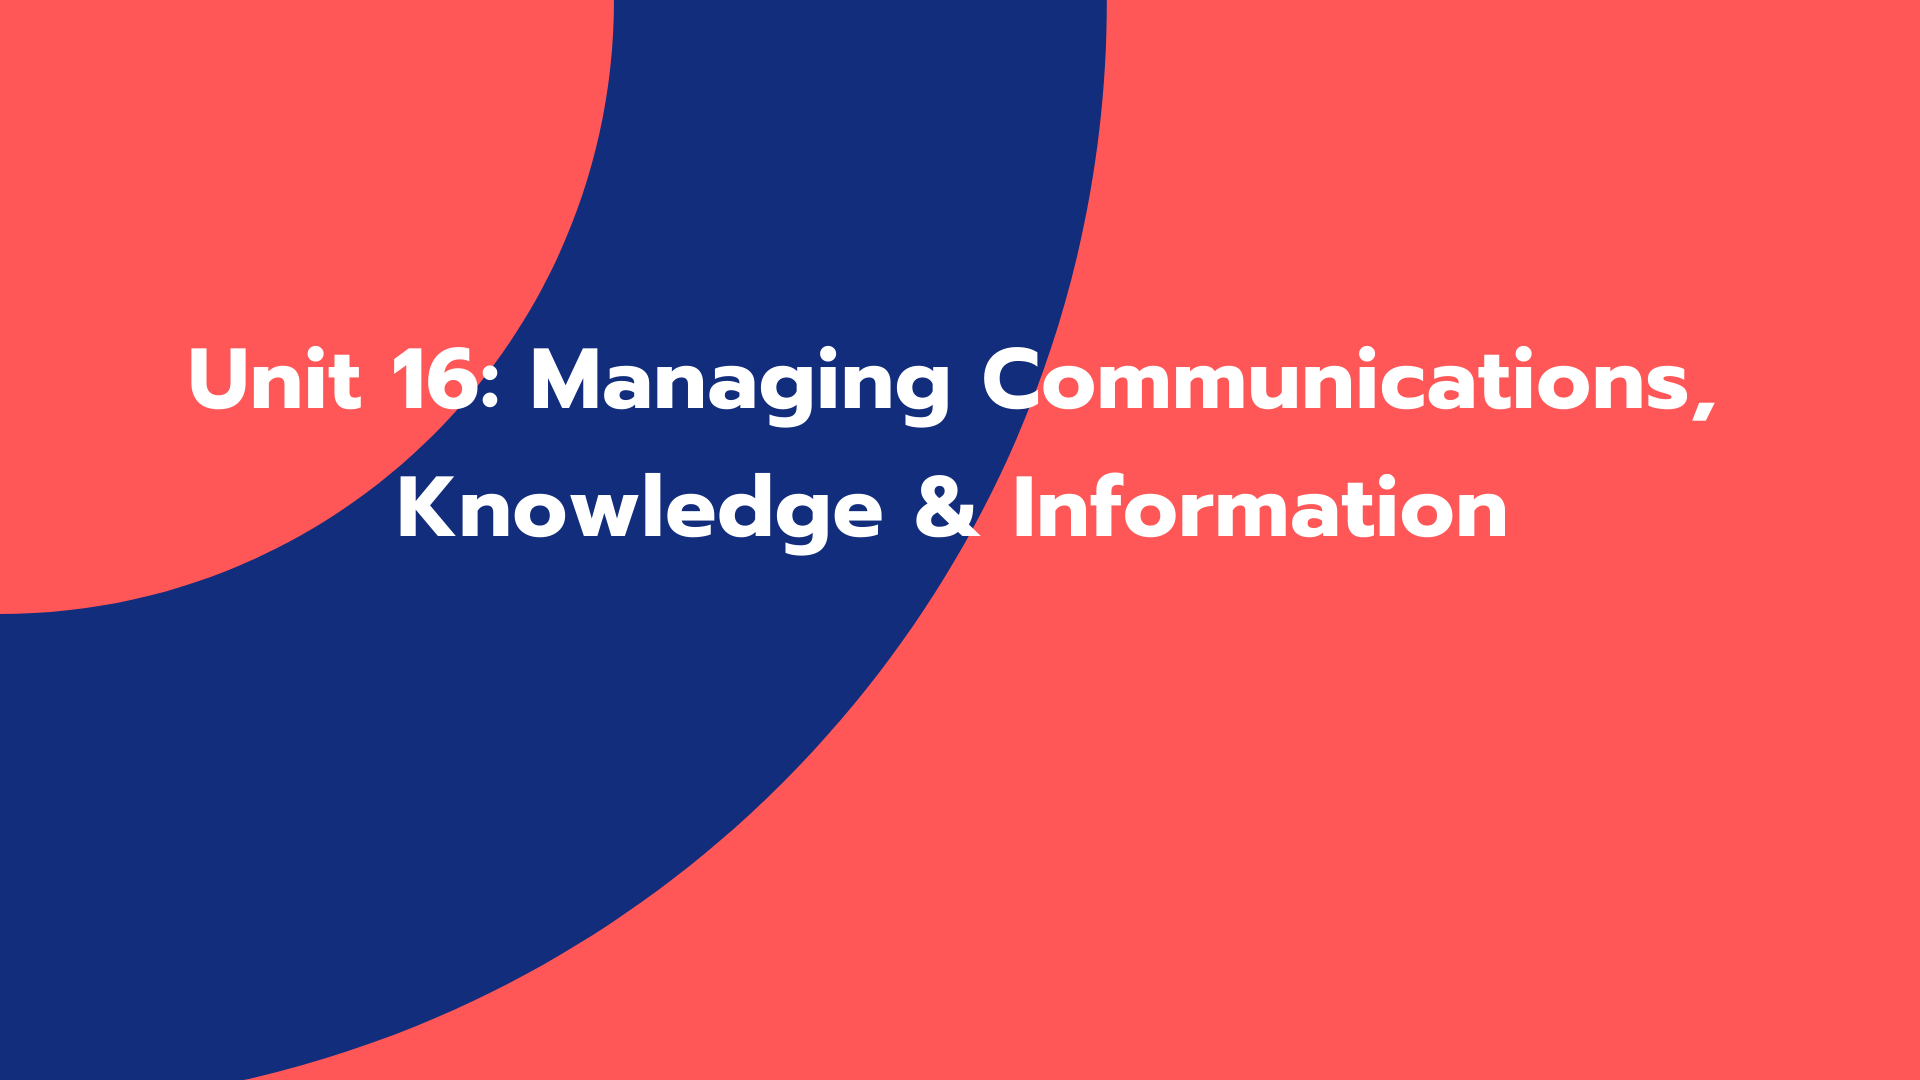 Unit 16: Managing Communications, Knowledge & Information